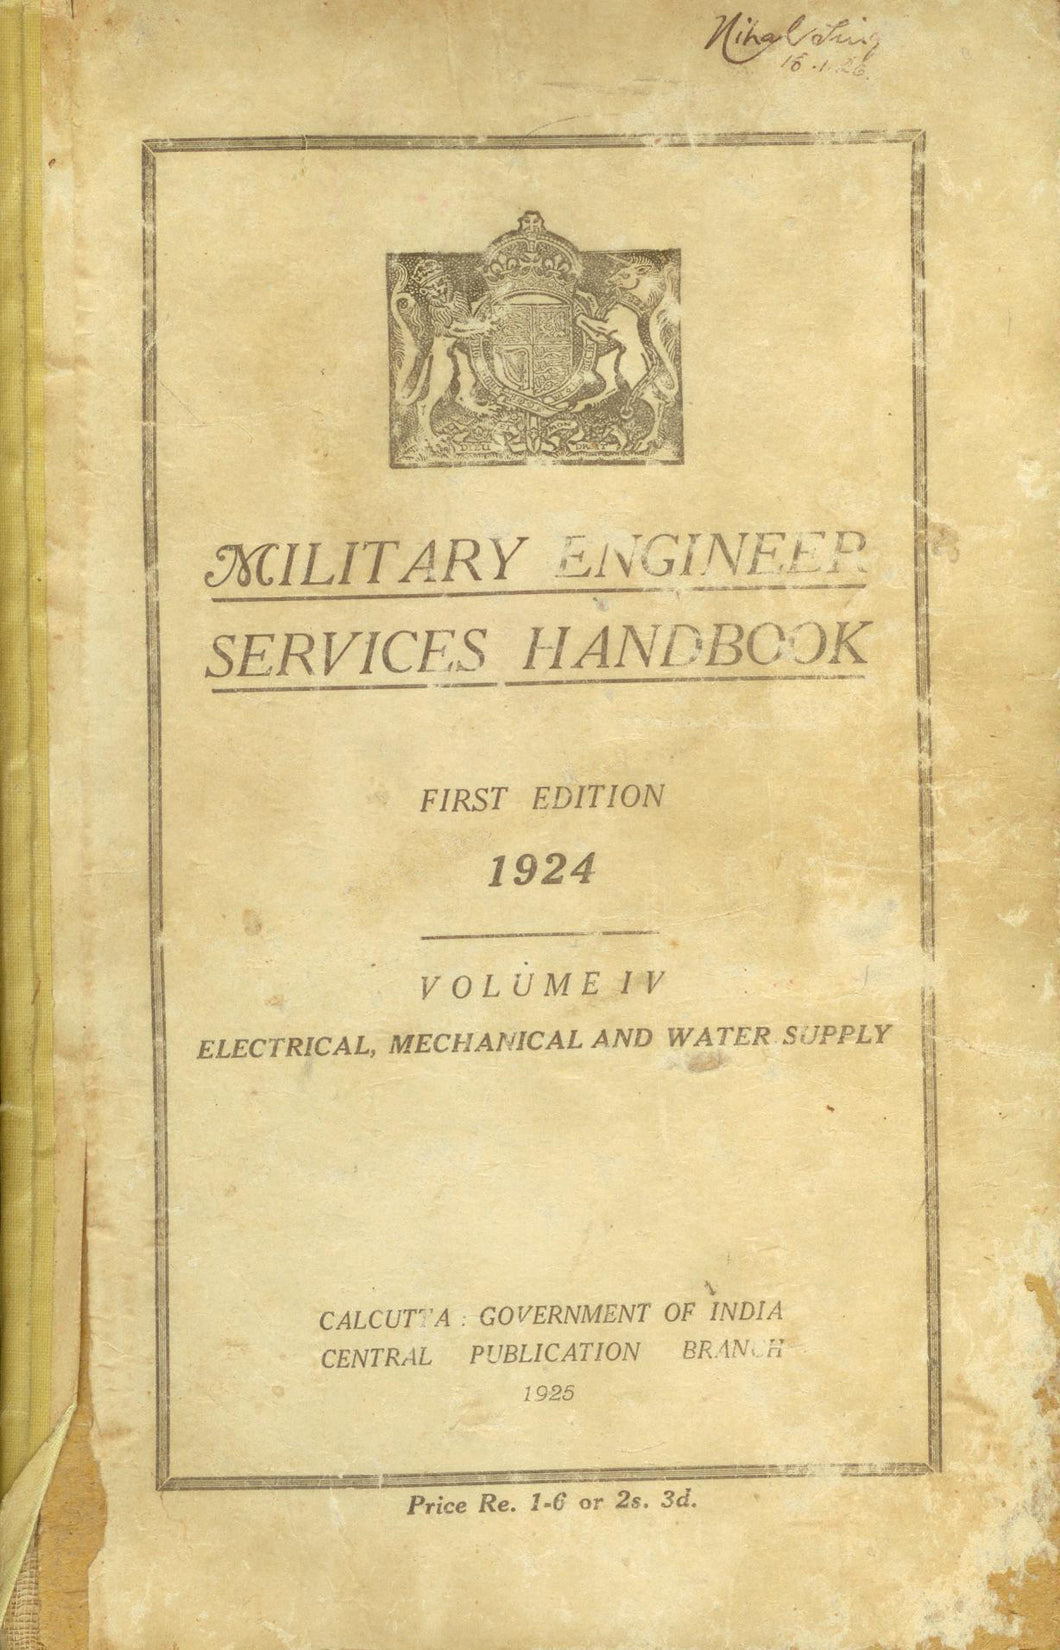 Military Engineer Services Handbook. Volume IV: Electrical, Mechanical and Water Supply